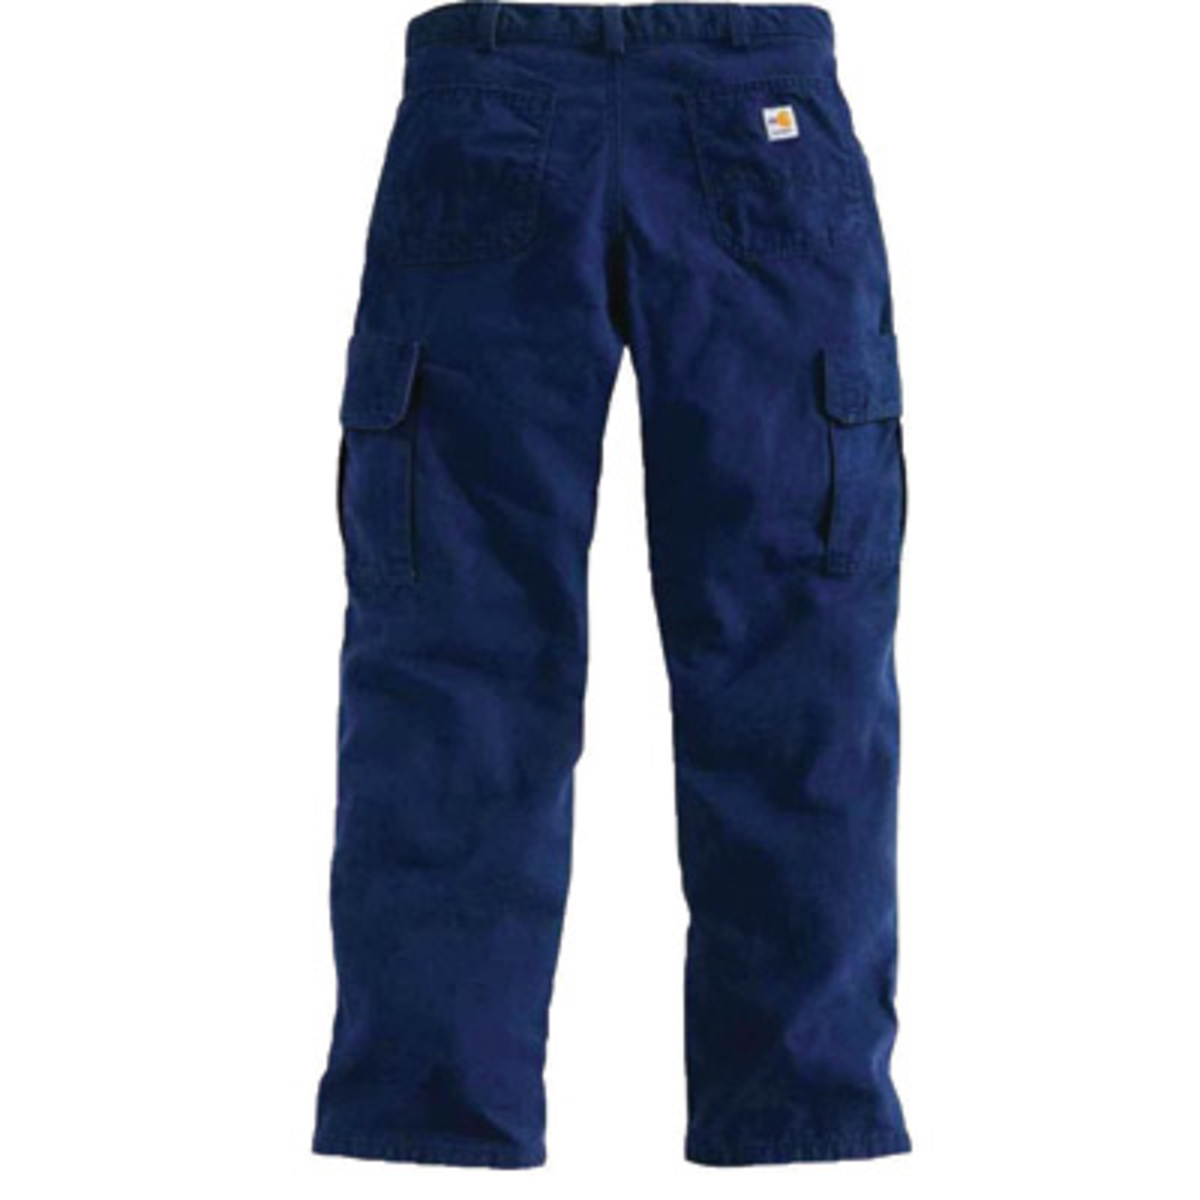 cargo pants with zippers - Pi Pants